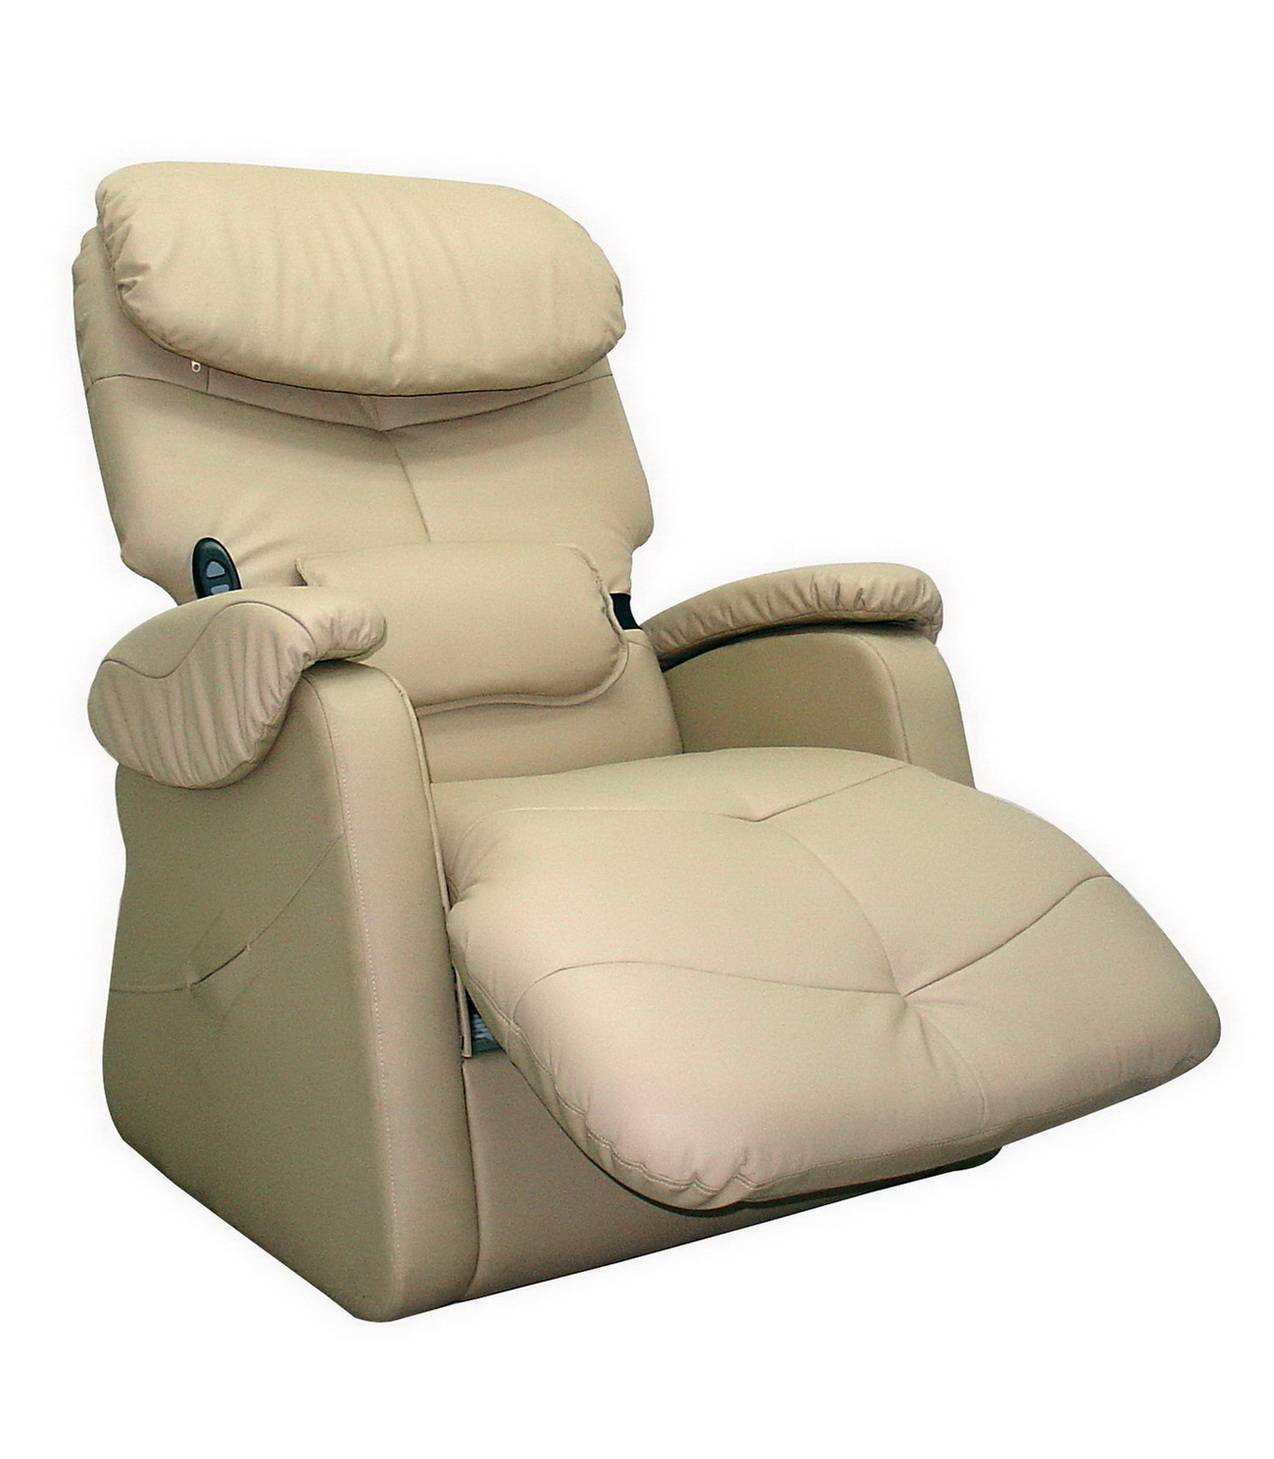 BH-8147 Zero-Gravity Relaxing Recliner Chair, Home Furniture, House Furniture